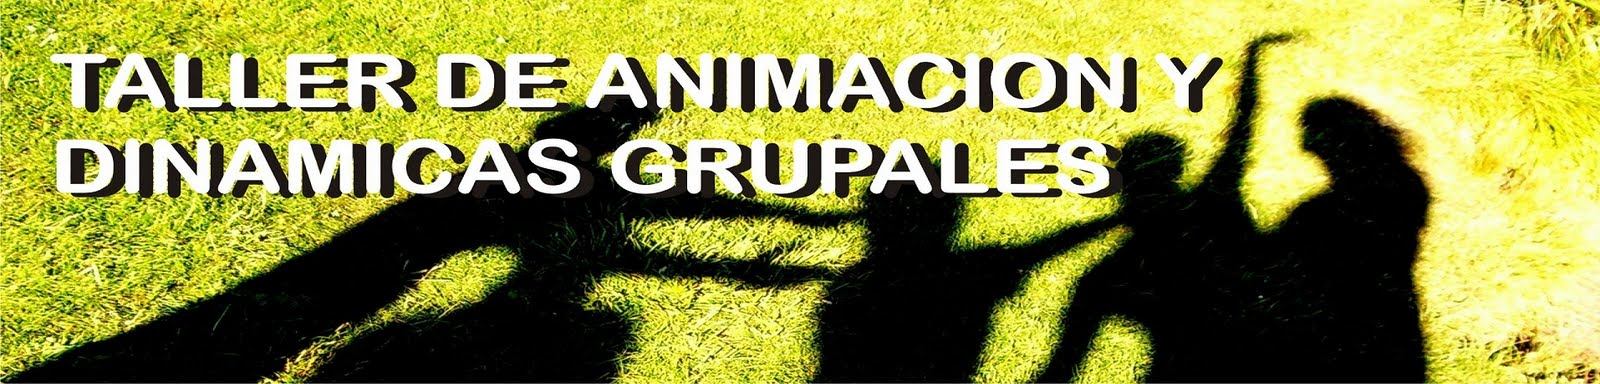 TALLER DE ANIMACION Y DINAMICAS GRUPALES